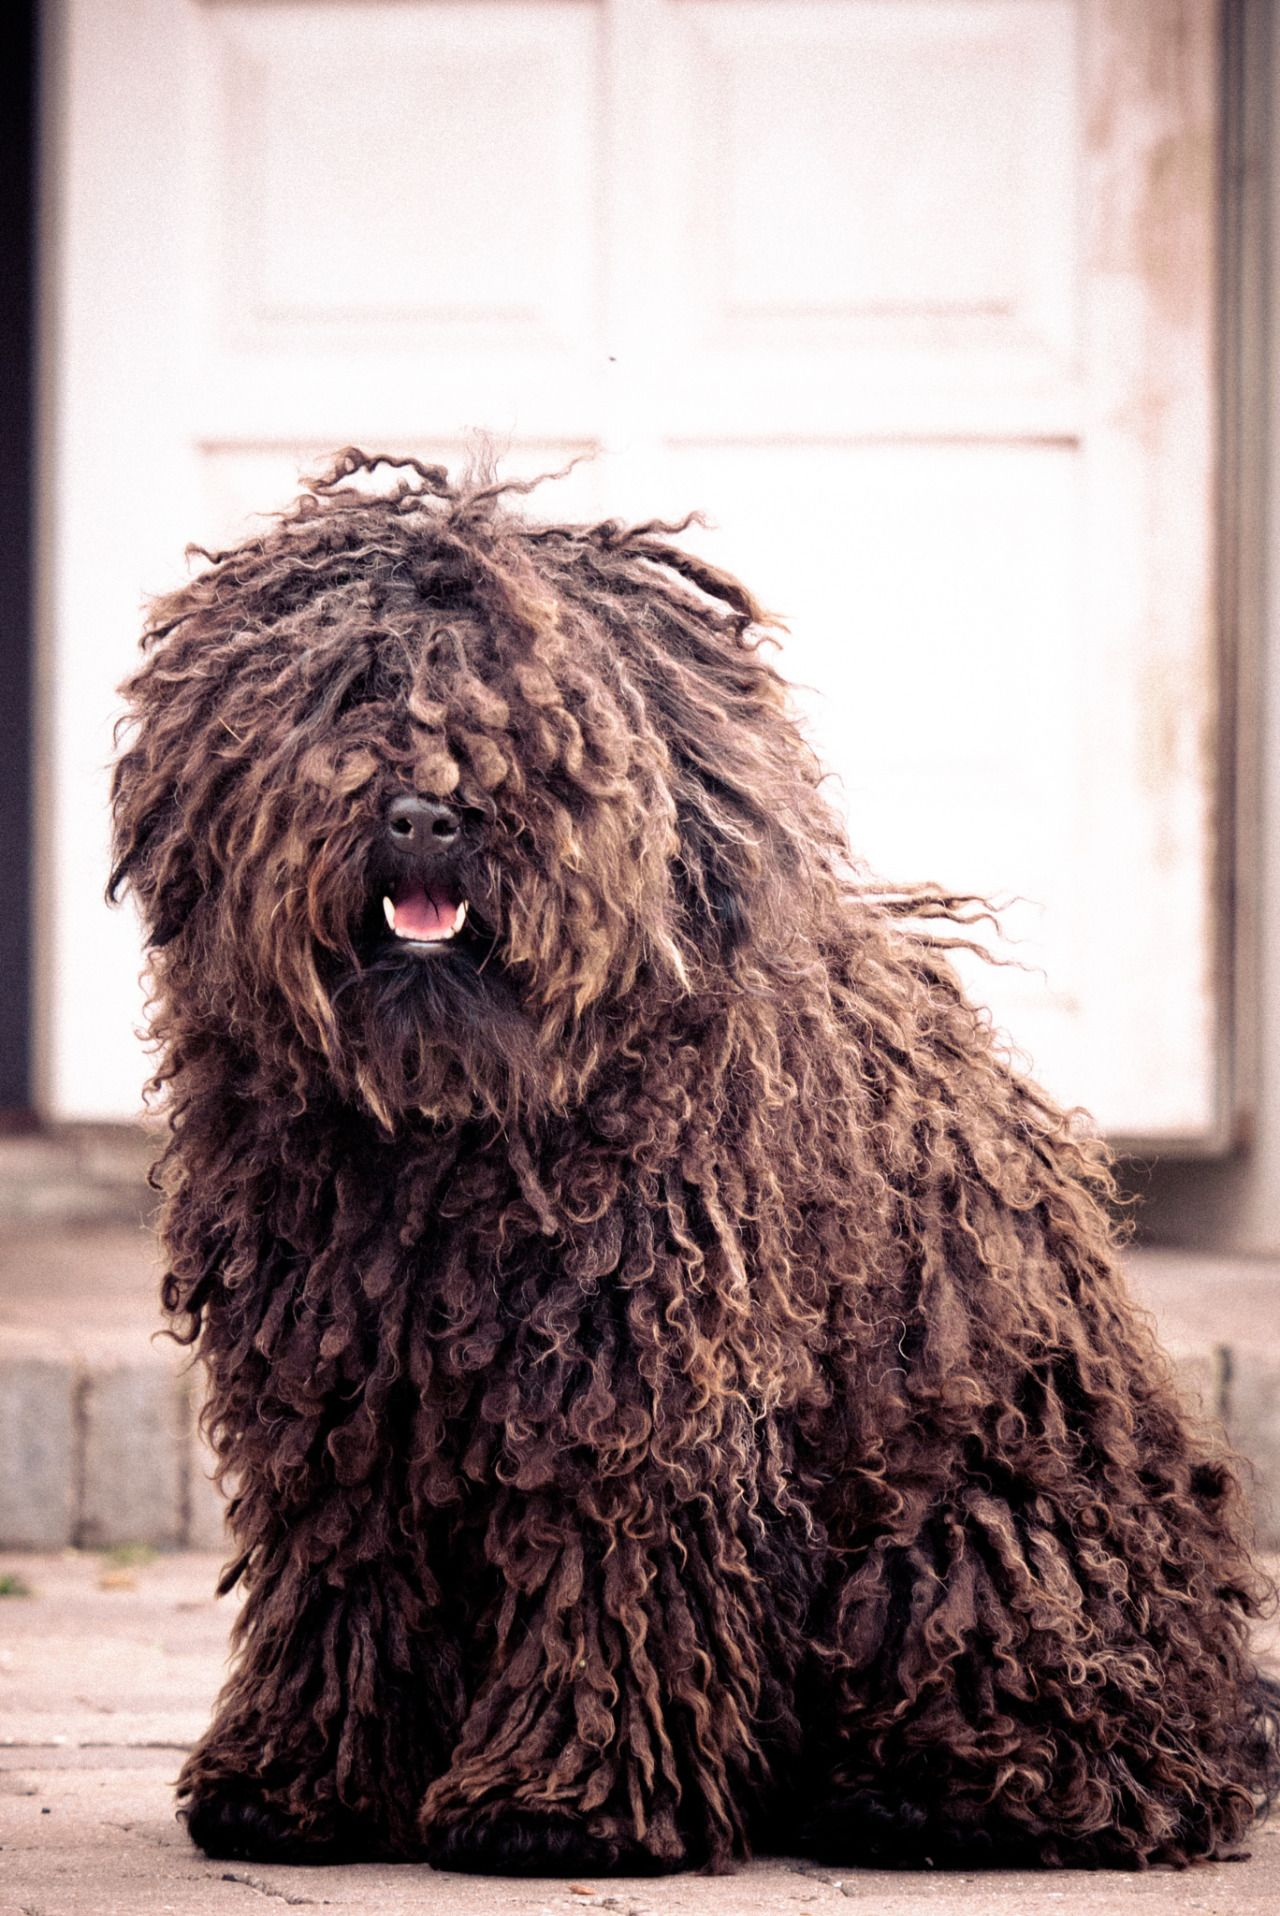 Handsomedogs Severin Messenbrink Hungarian Puli The Dog Has Got More Fun Out Of Man Than For Is Laughable